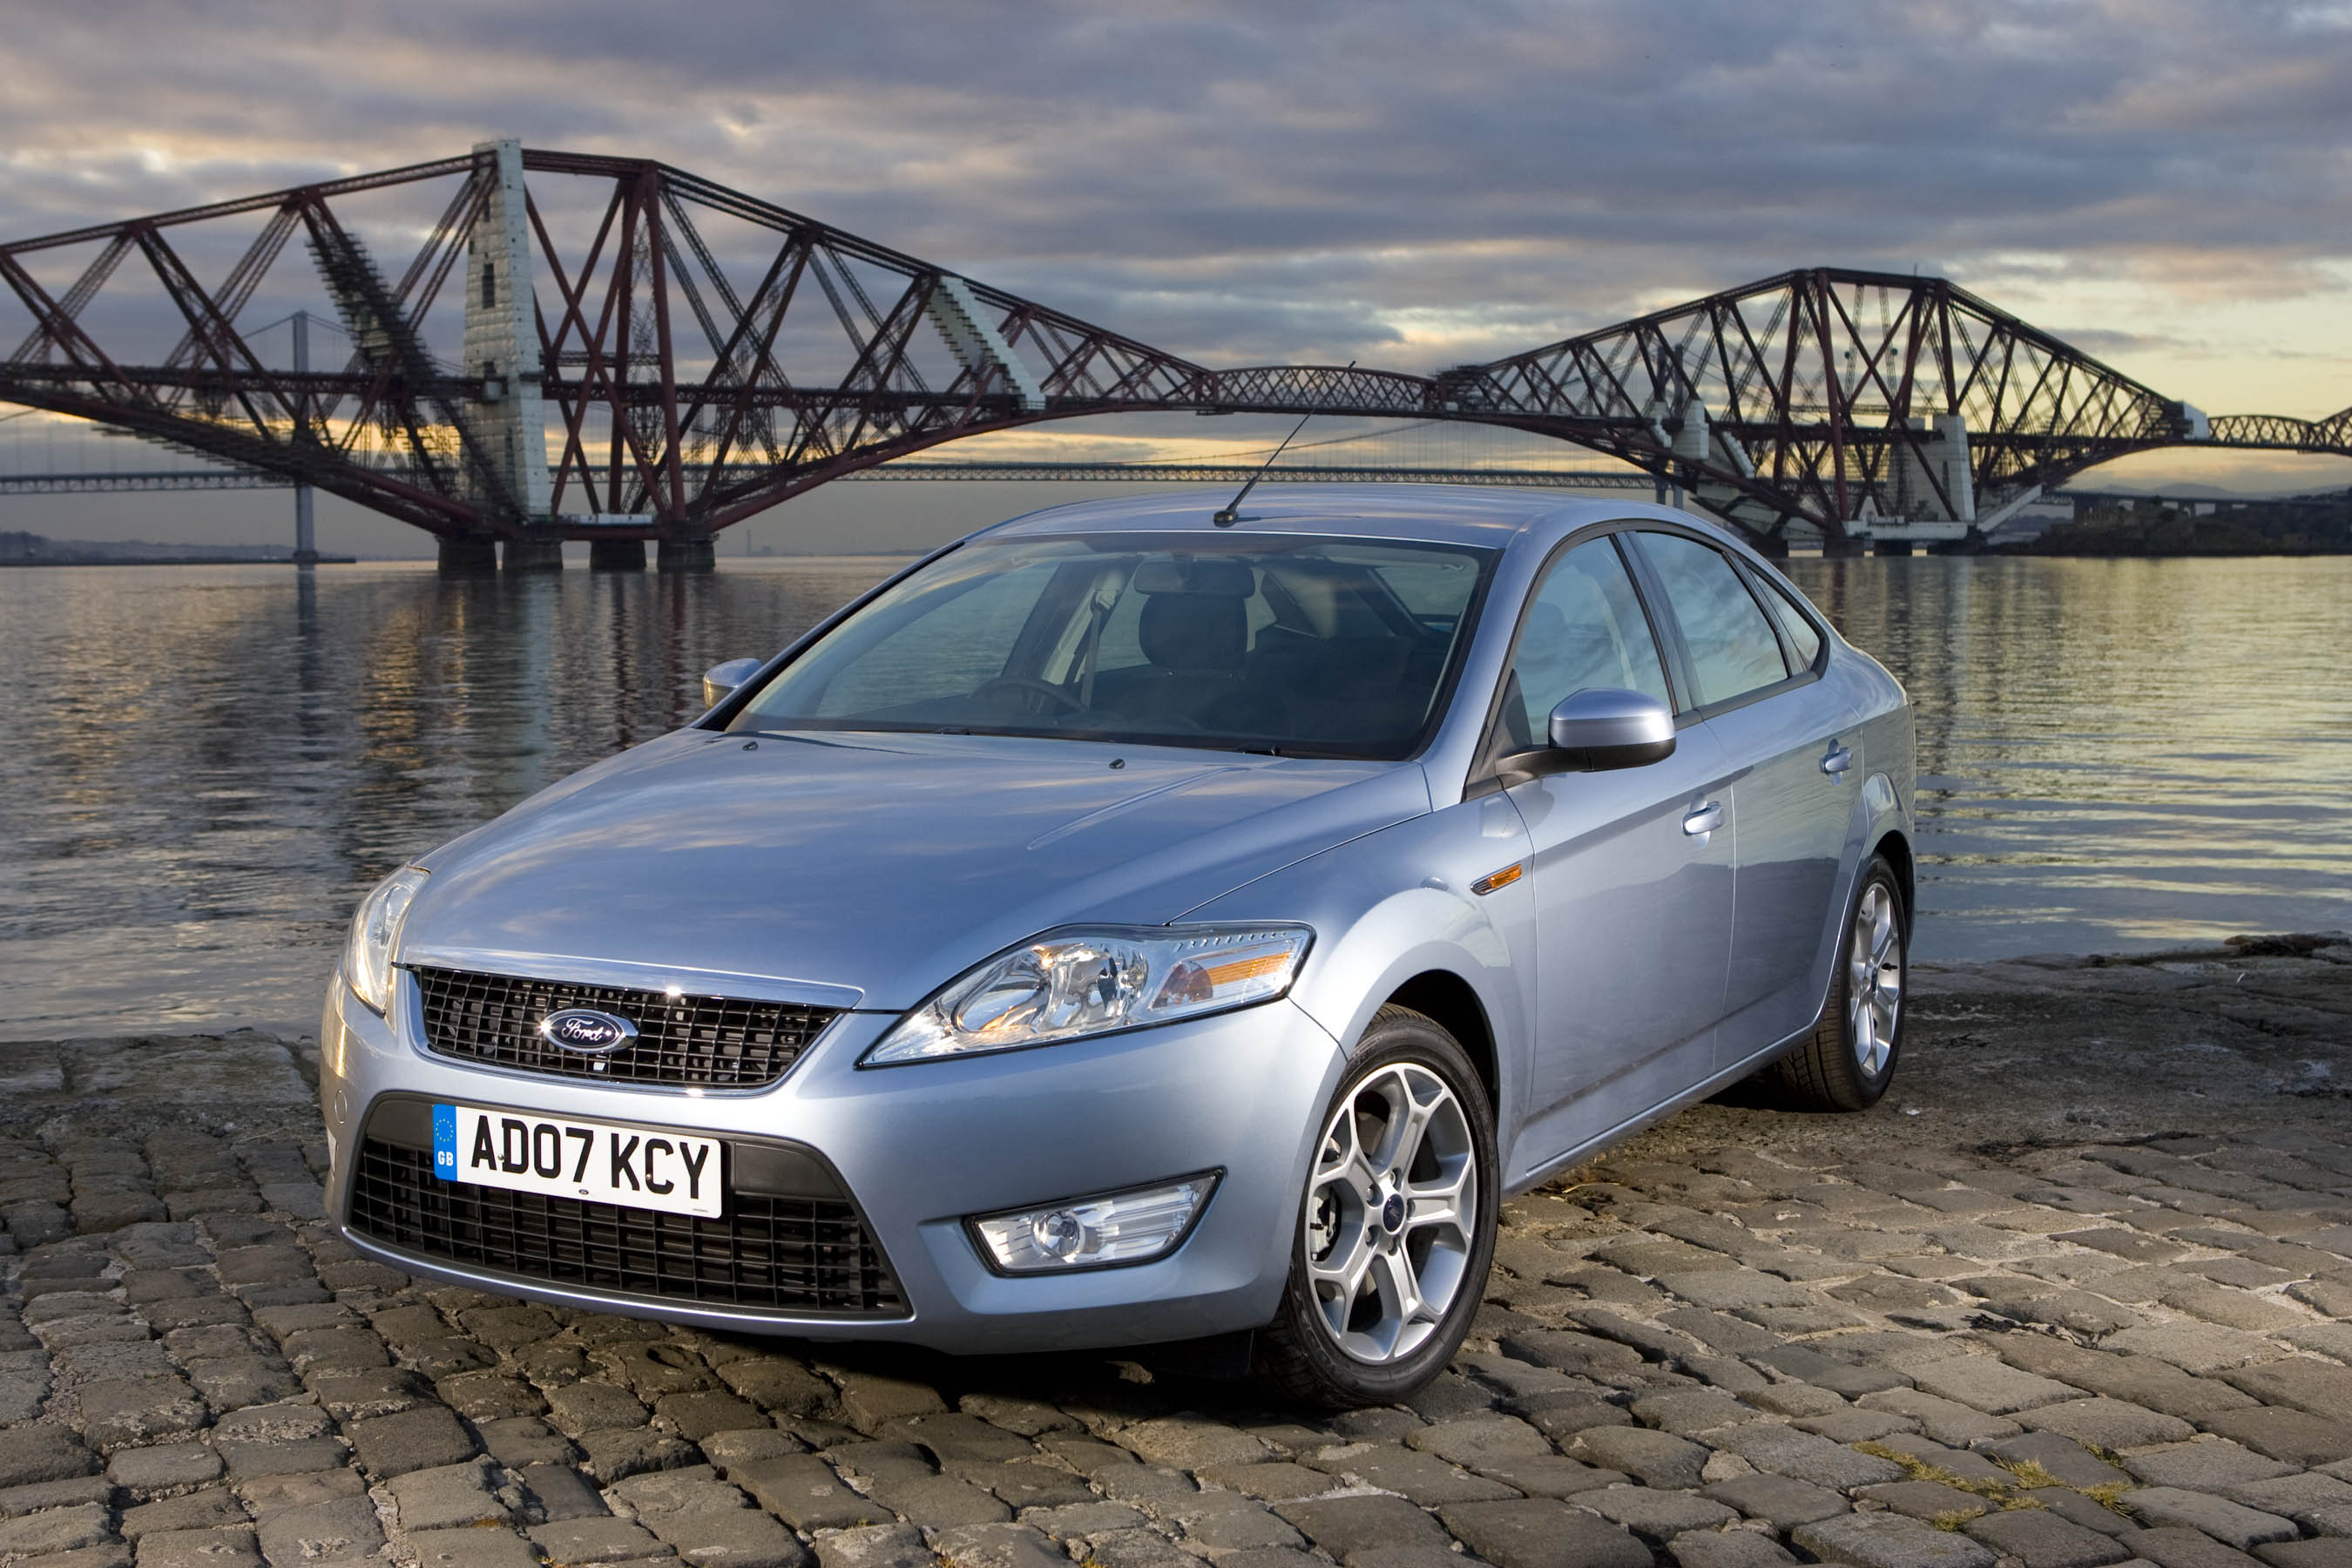 ford mondeo features adaptive cruise control technology. Black Bedroom Furniture Sets. Home Design Ideas